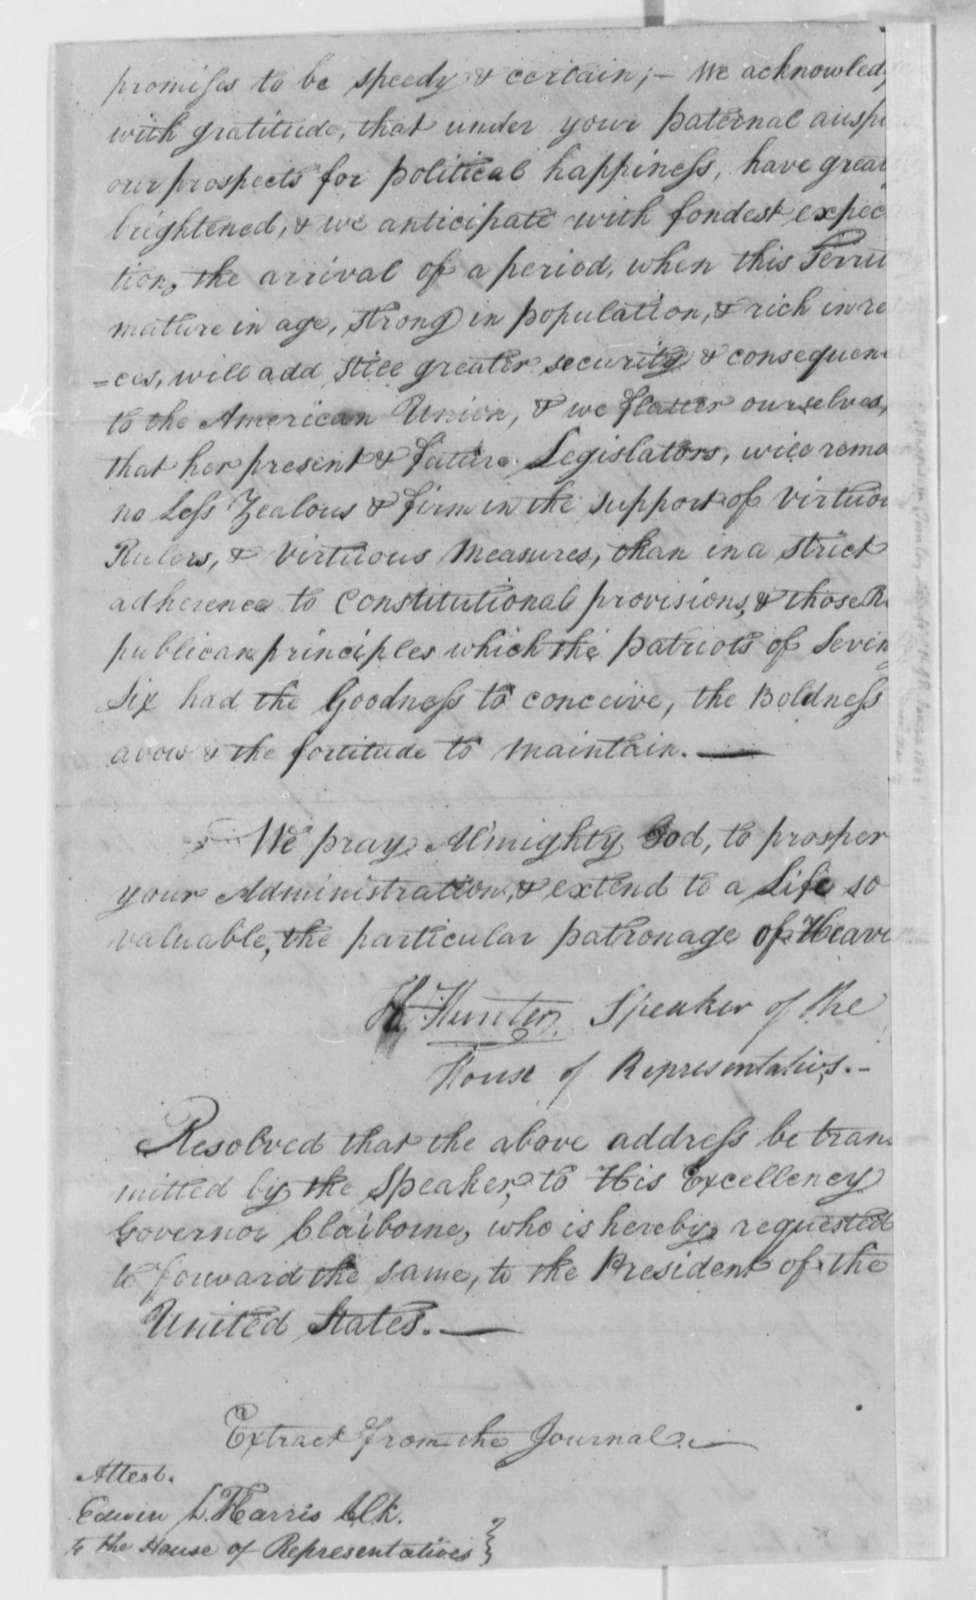 Thomas Jefferson to Mississippi Territory House of Representatives, January 20, 1802, Resolution